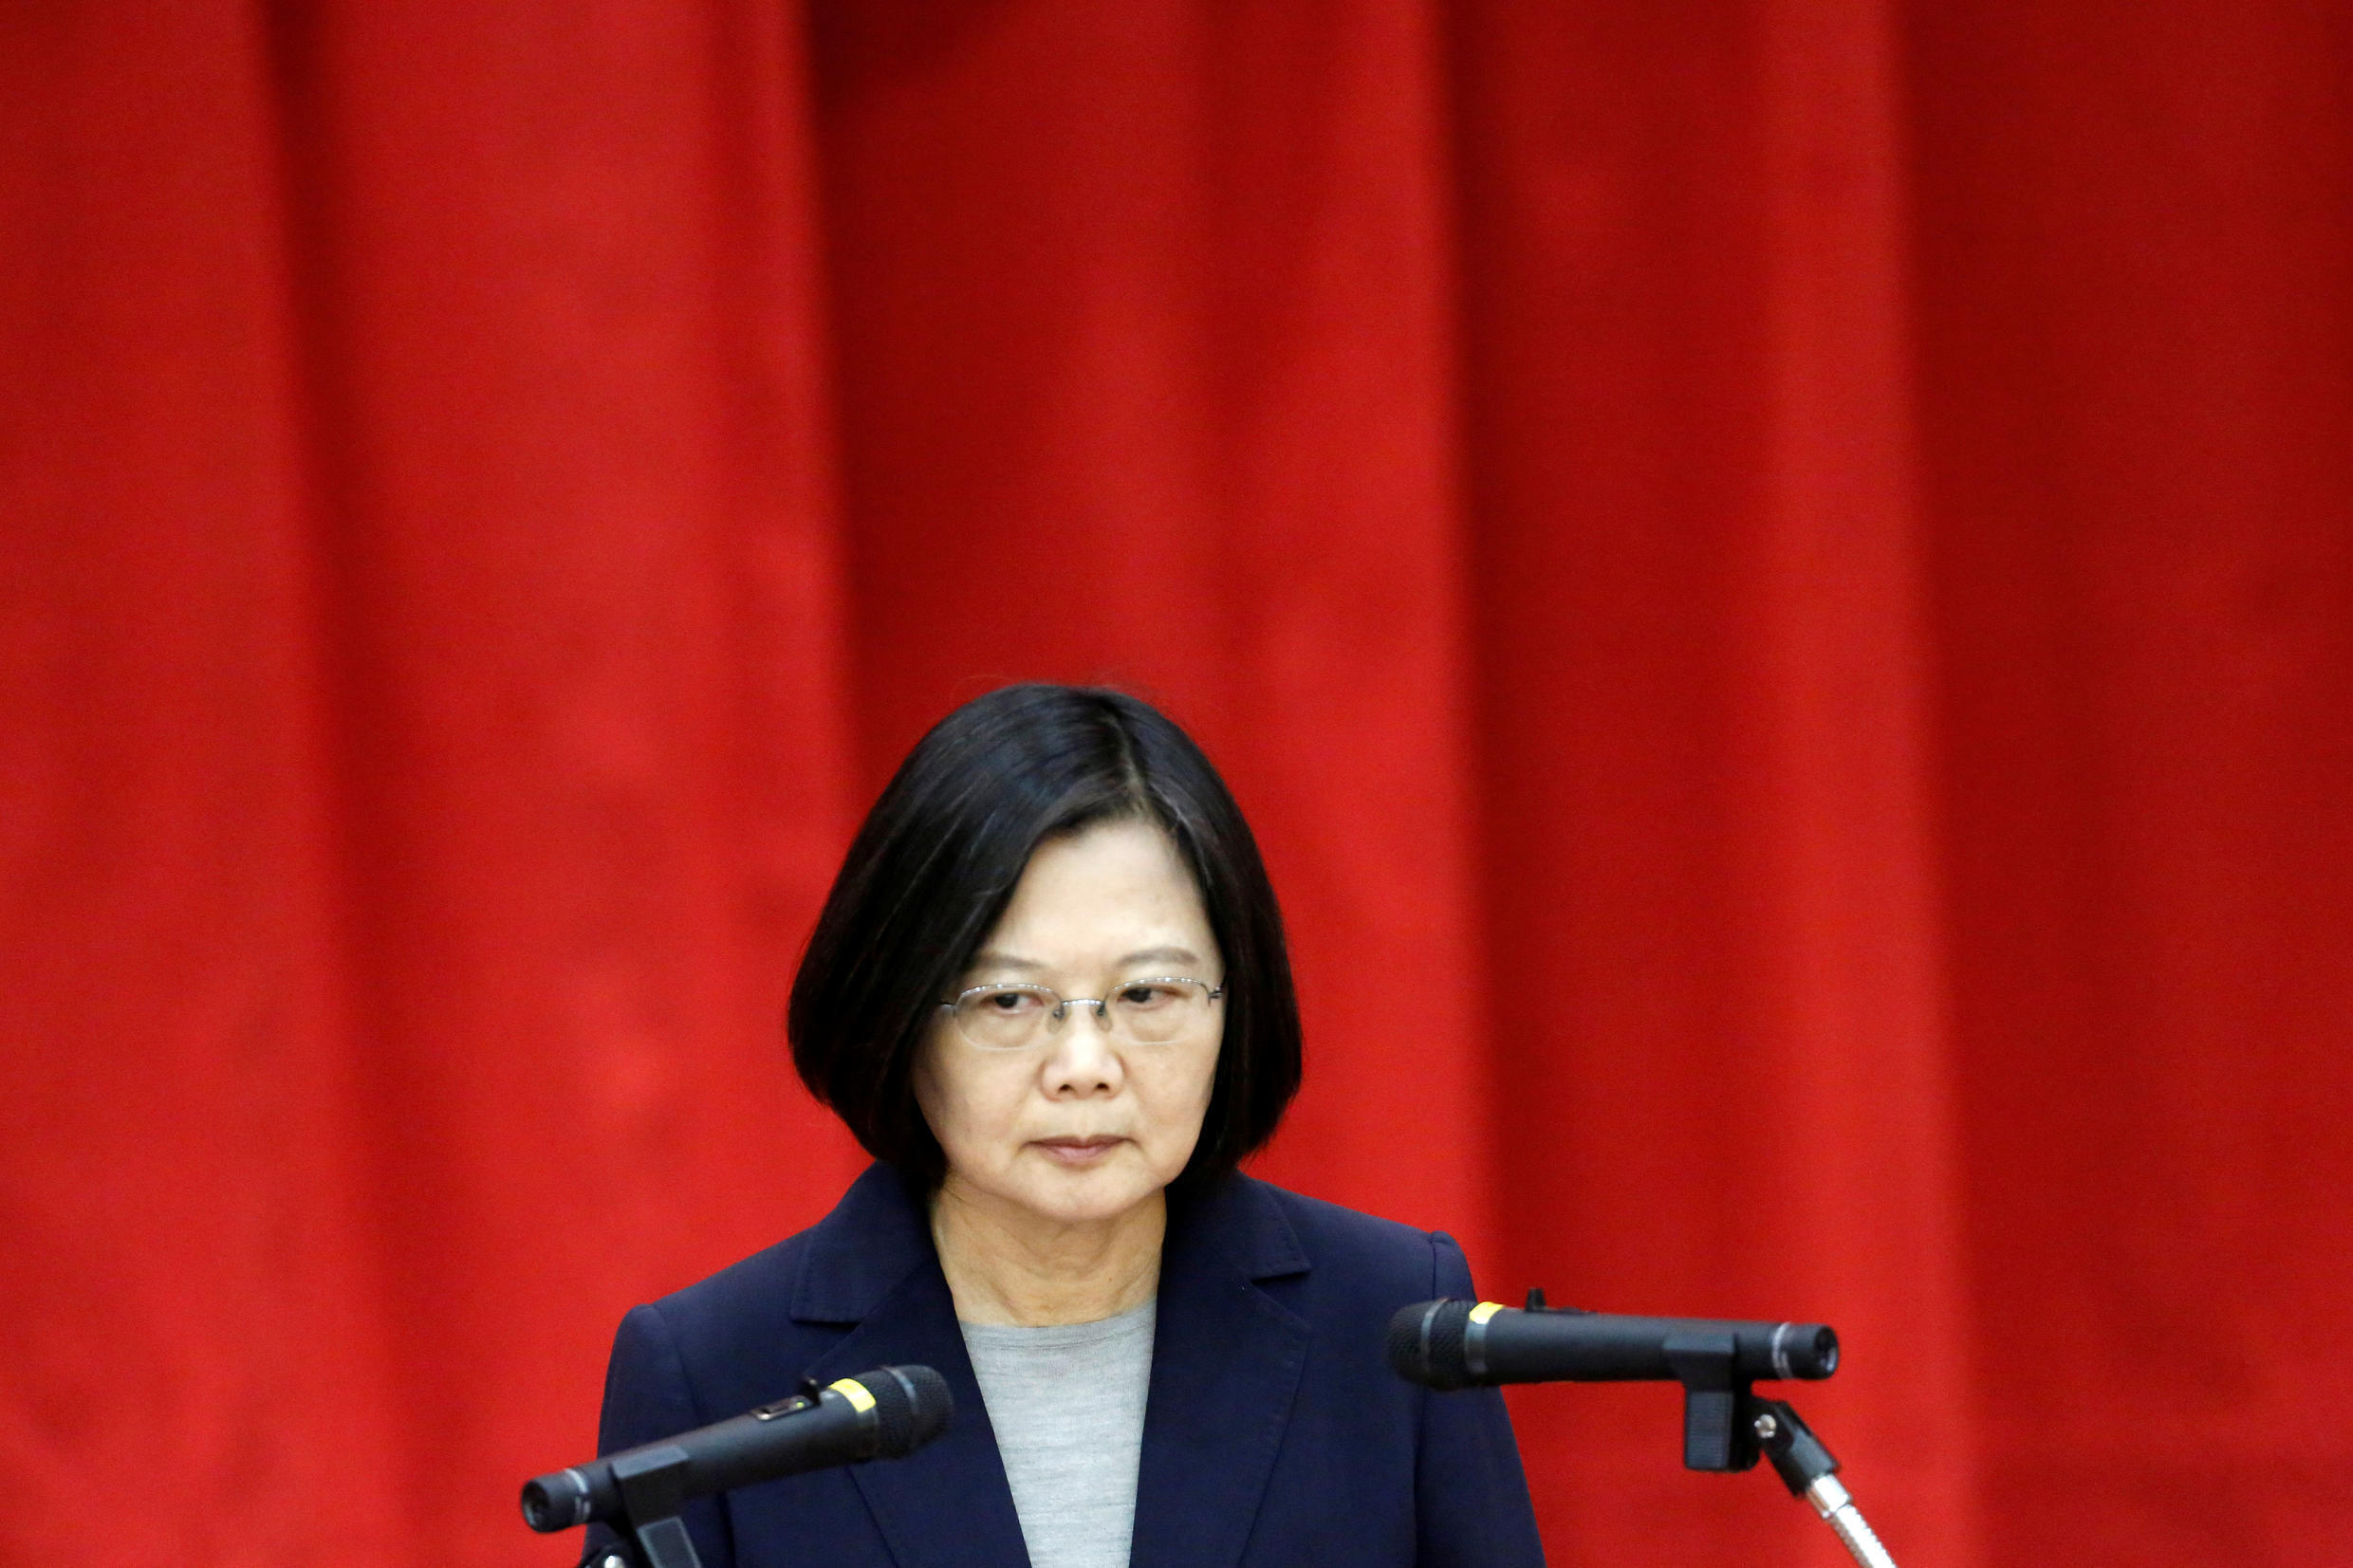 Taiwan's President Tsai Ing-wen speaks during a graduation ceremony for Investigation Bureau agents in New Taipei City, Taiwan on December 26, 2019.